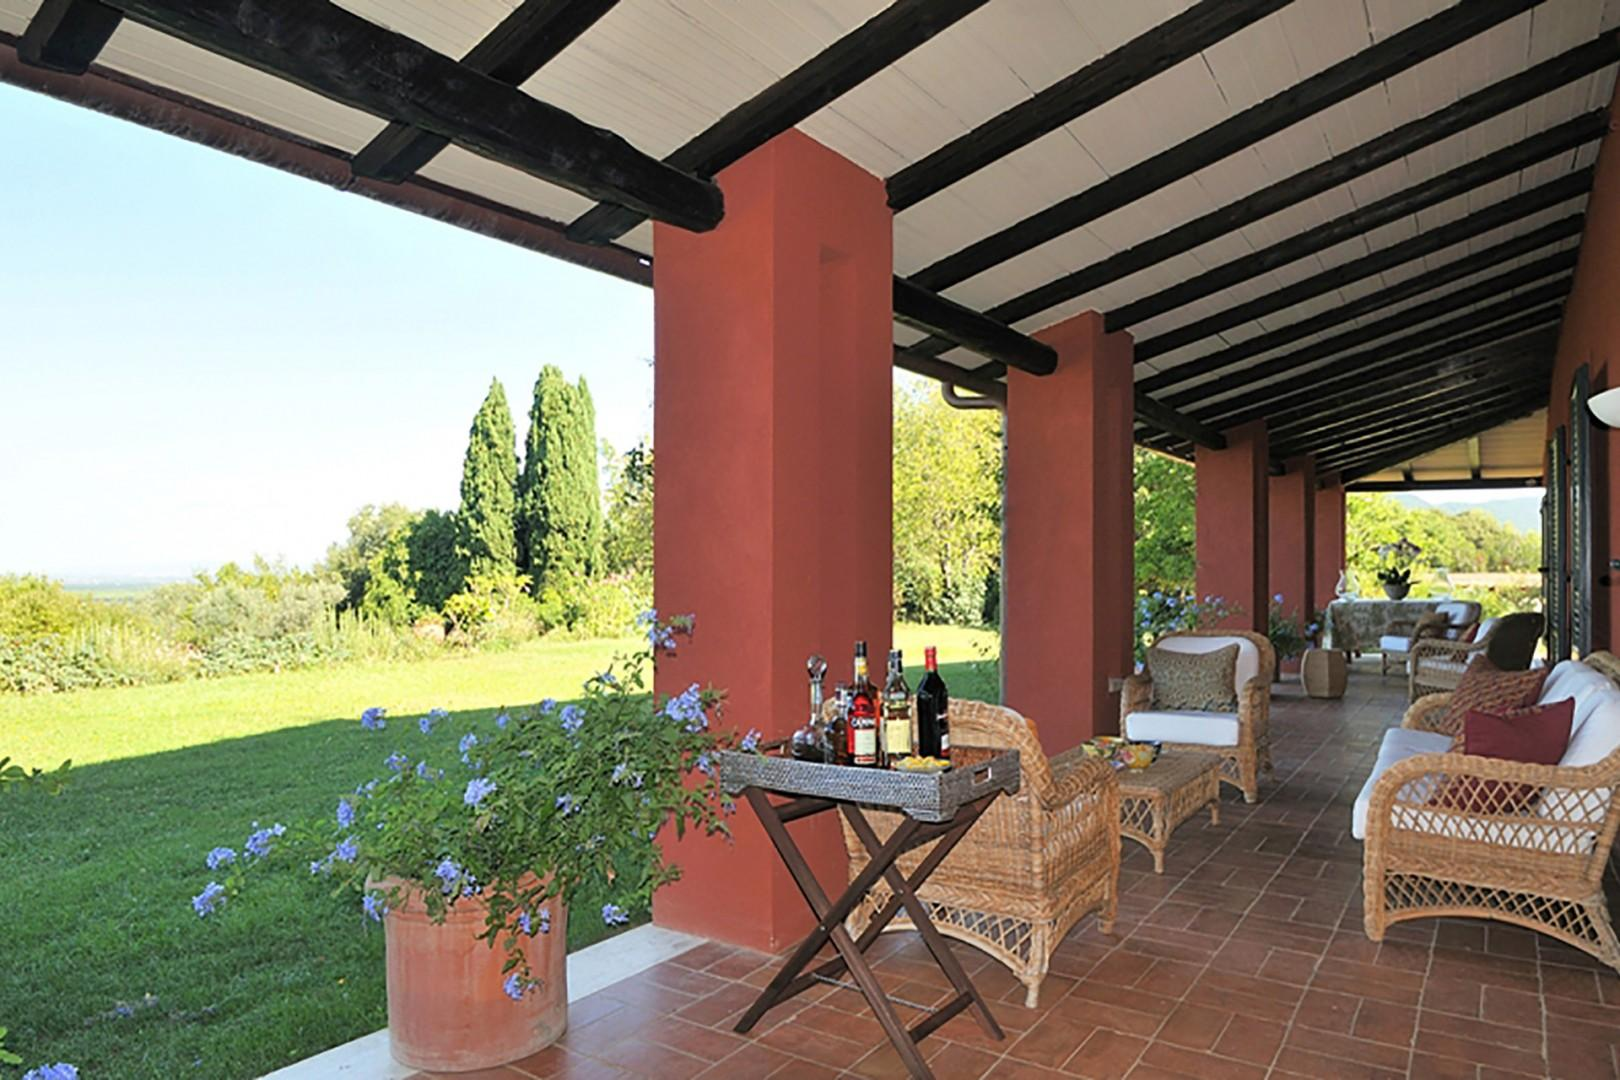 Under the loggia, comfortable rattan chairs.